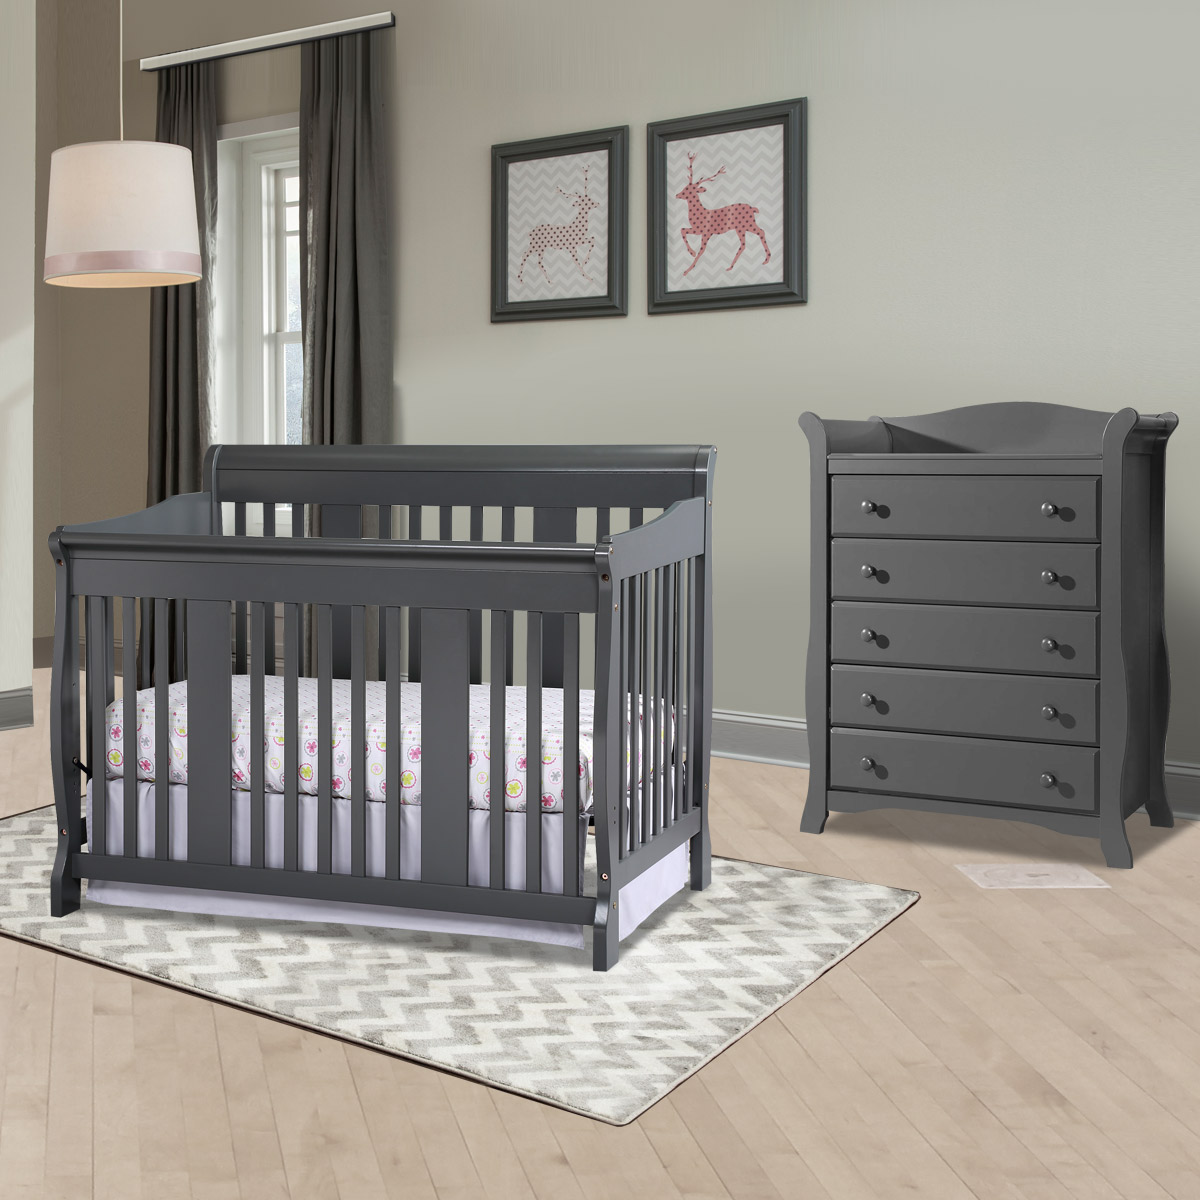 Divine White Sherwin Williams Grey Crib And Dresser Set Full Size Of Crib And Dresser